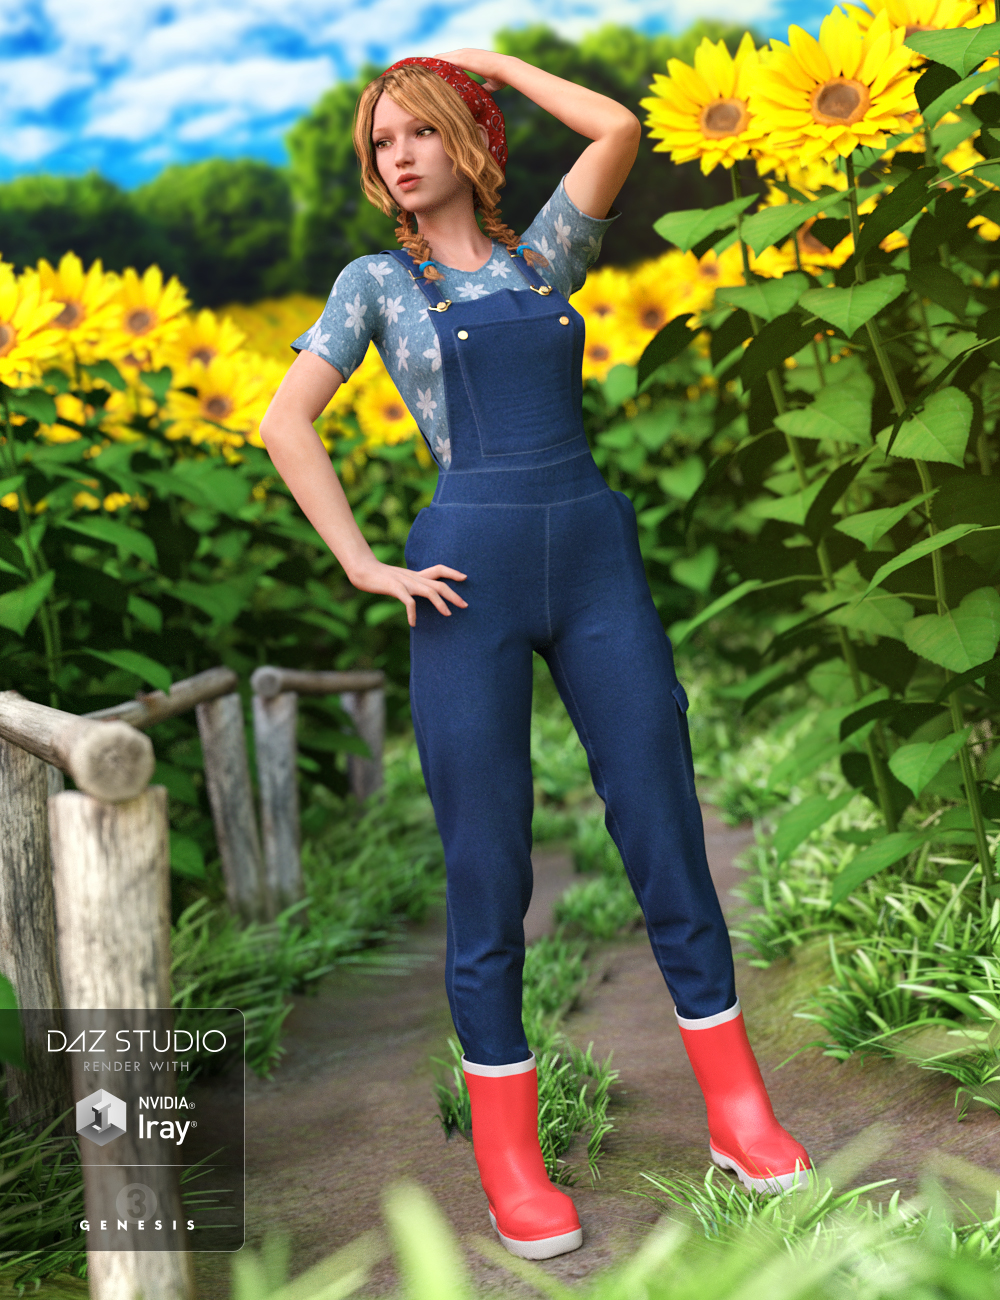 Garden Outfit for Genesis 3 Female(s) by: Oskarsson, 3D Models by Daz 3D